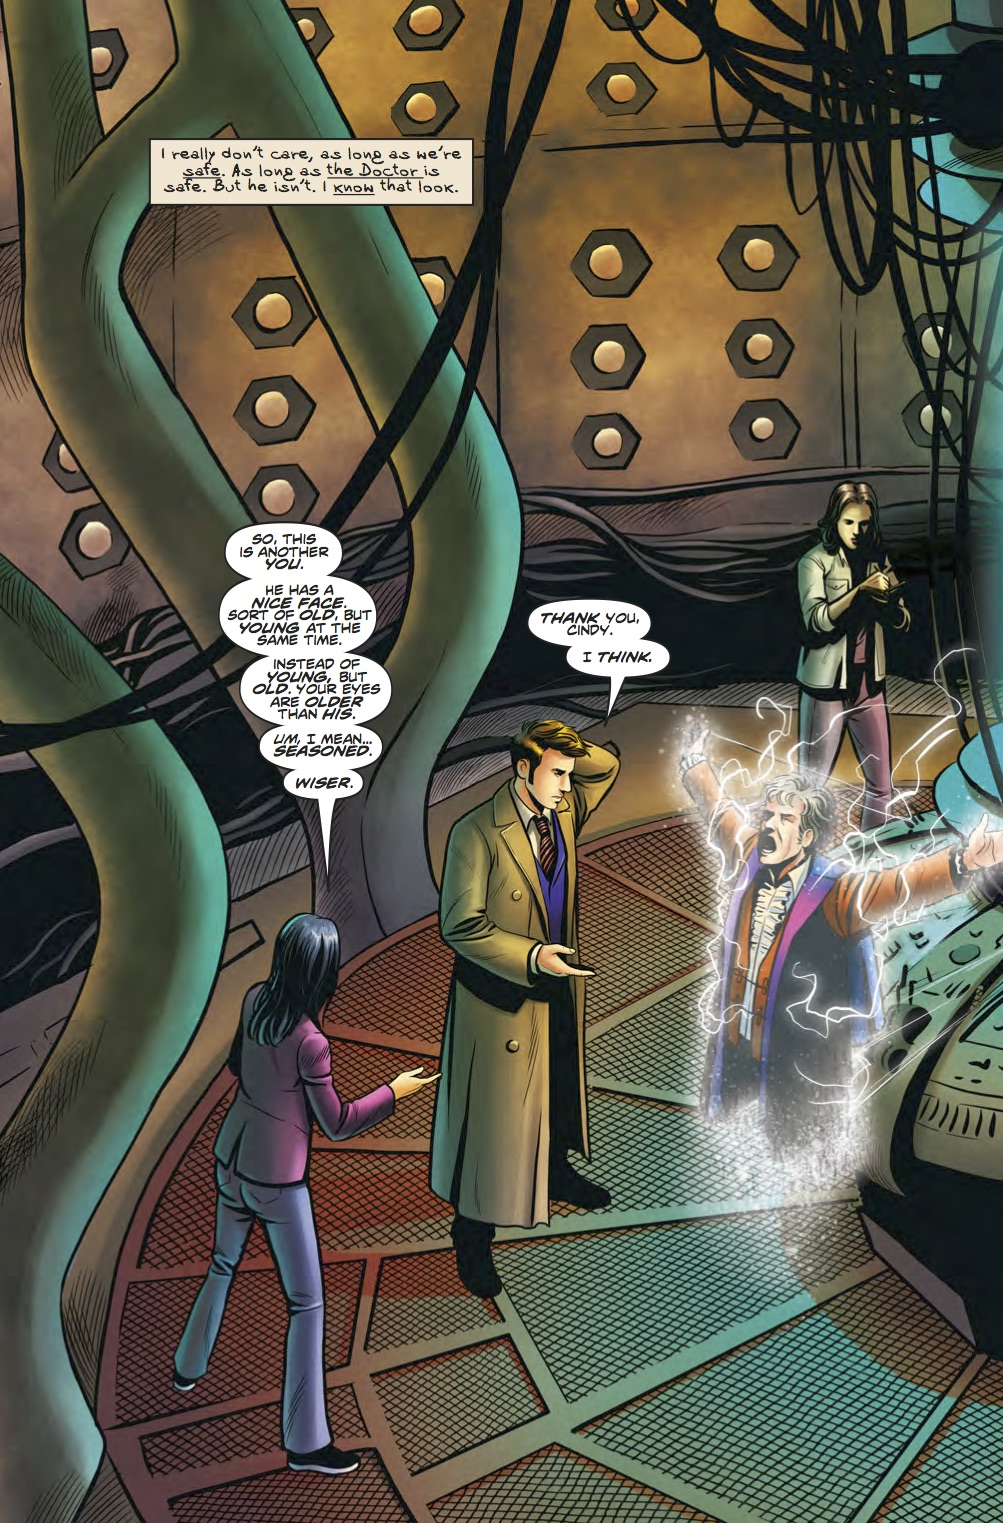 The Lost Dimension #3 - Tenth Doctor Special  (Credit: Titan)